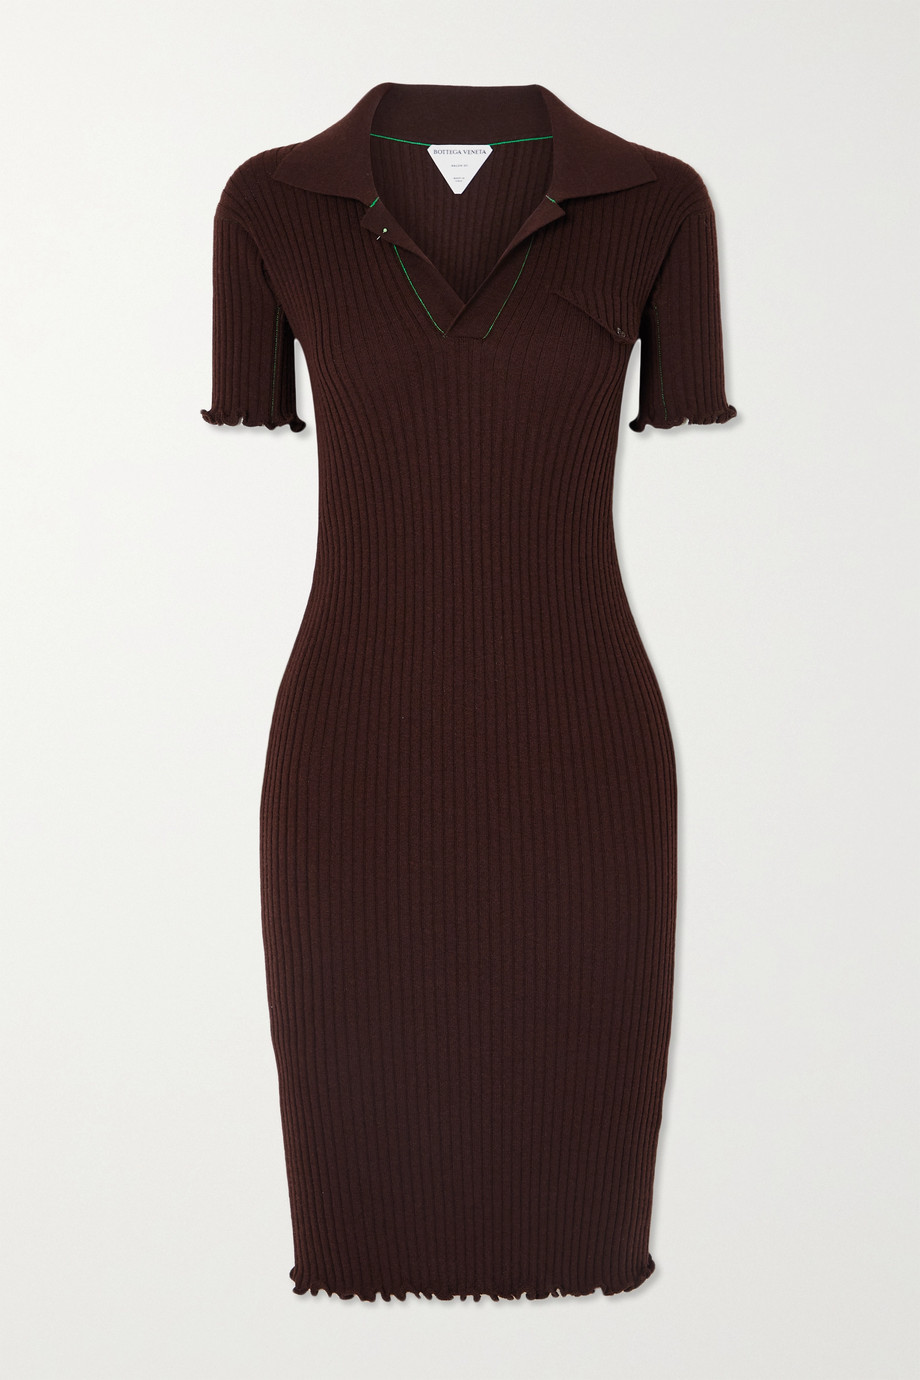 BOTTEGA VENETA Ruffled ribbed wool dress